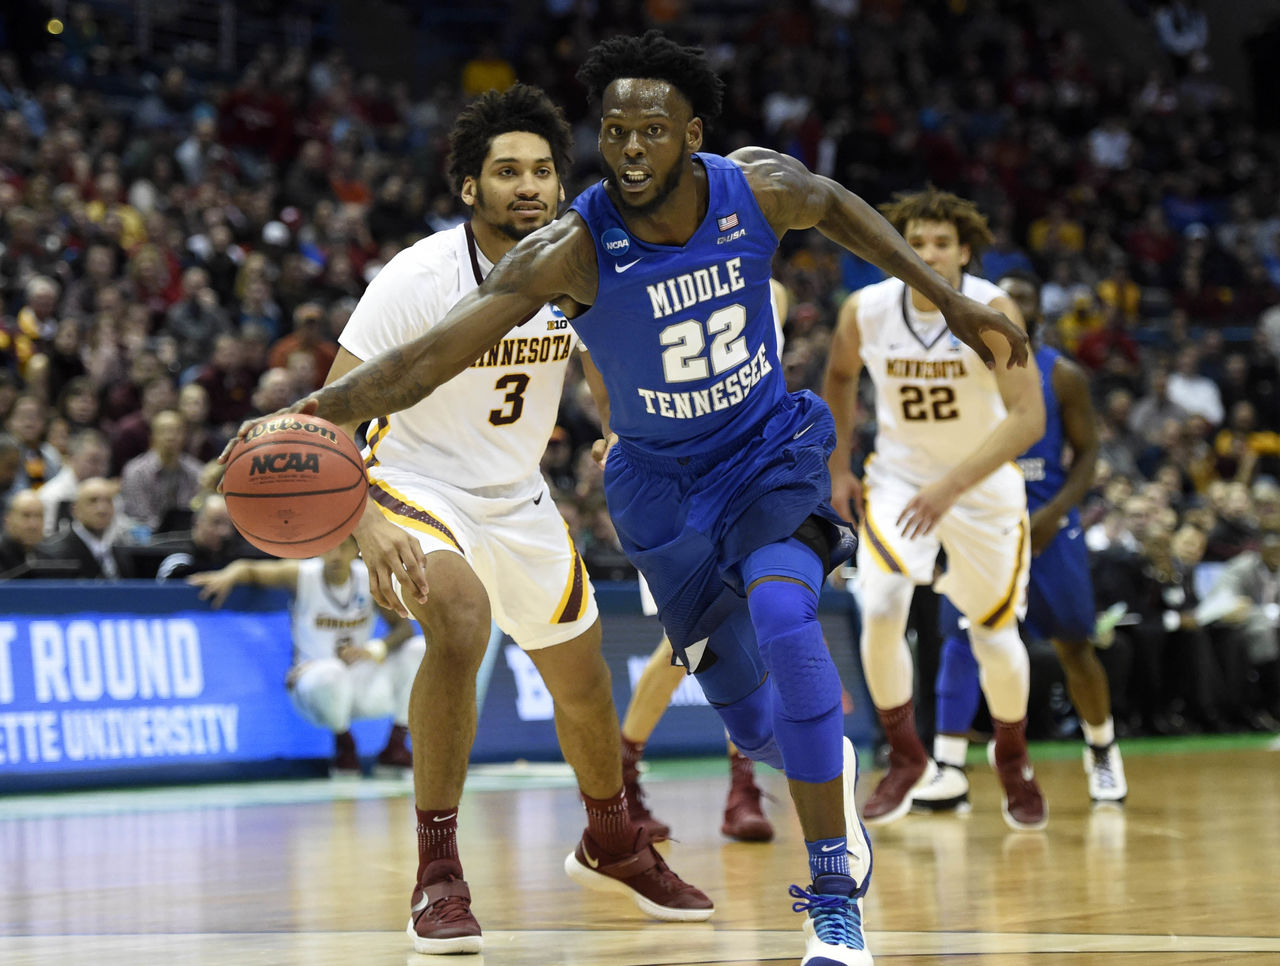 Cropped_2017-03-16t223250z_982868572_nocid_rtrmadp_3_ncaa-basketball-ncaa-tournament-first-round-minnesota-vs-middle-tennessee-state